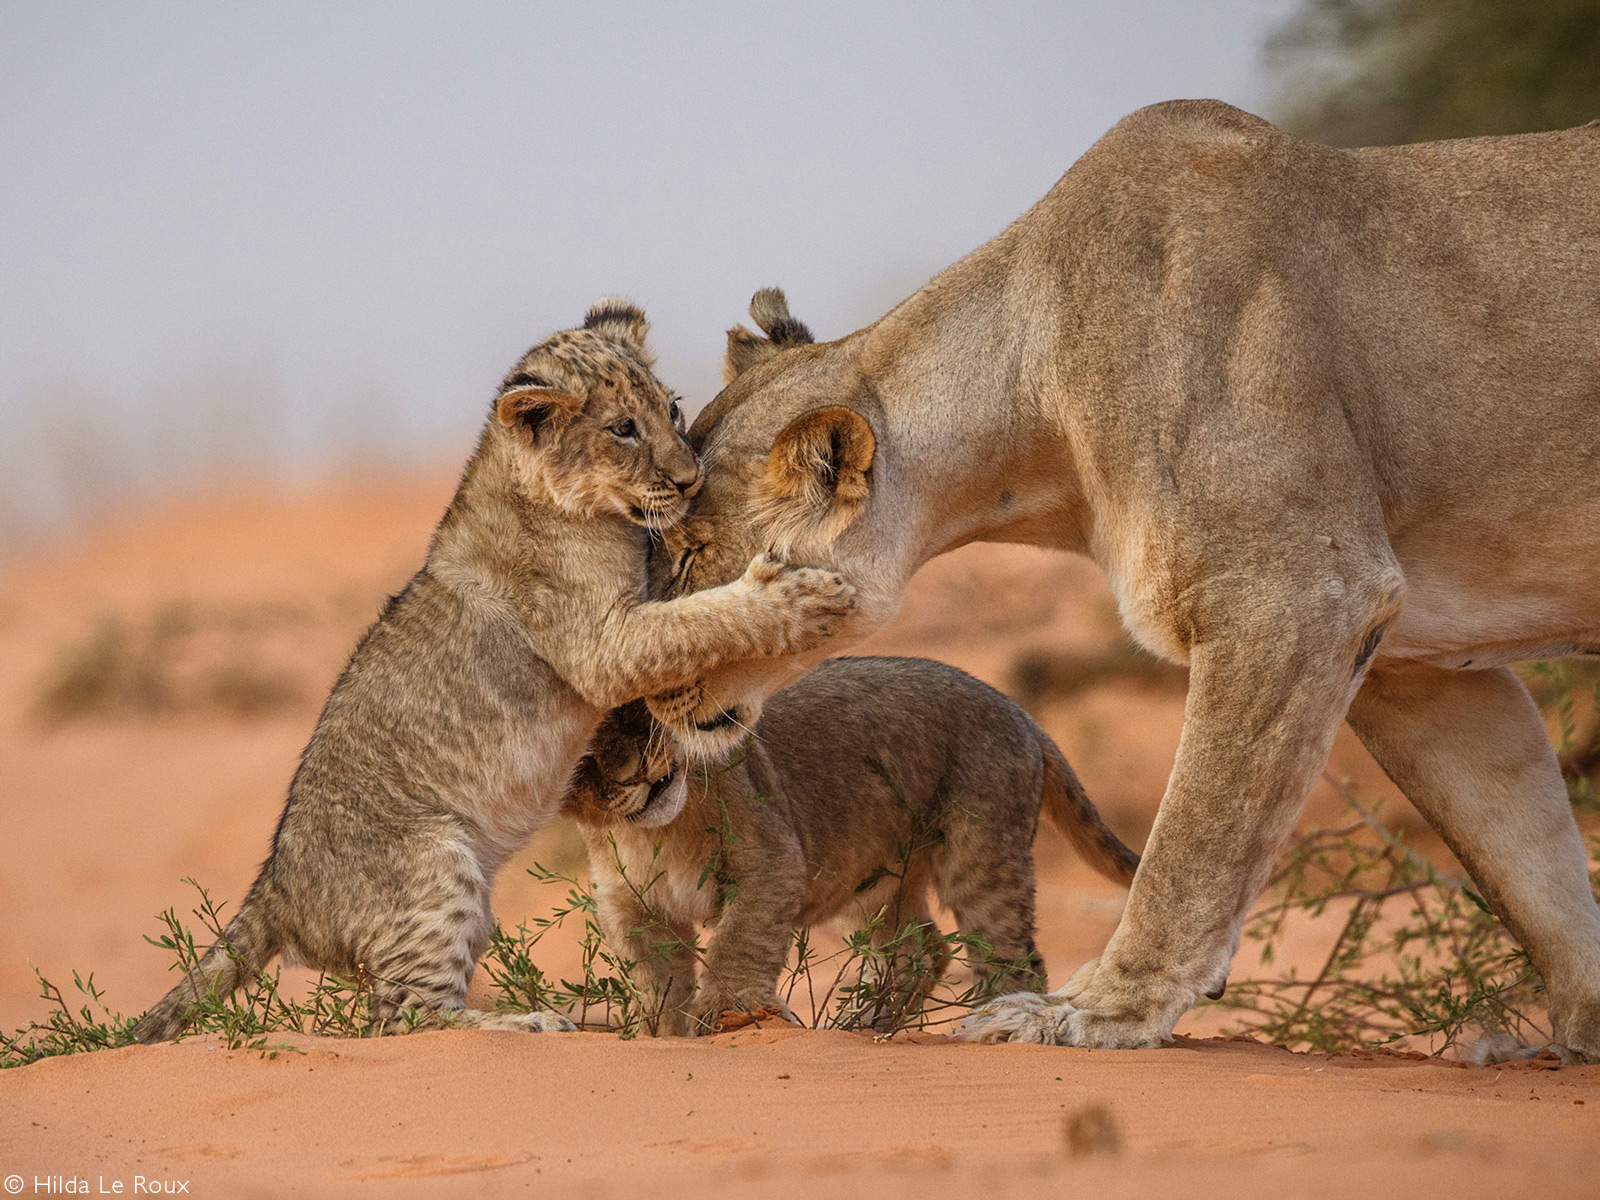 Special moment between mother lion and her cubs. Kgalagadi Transfrontier Park, South Africa © Hilda Le Roux